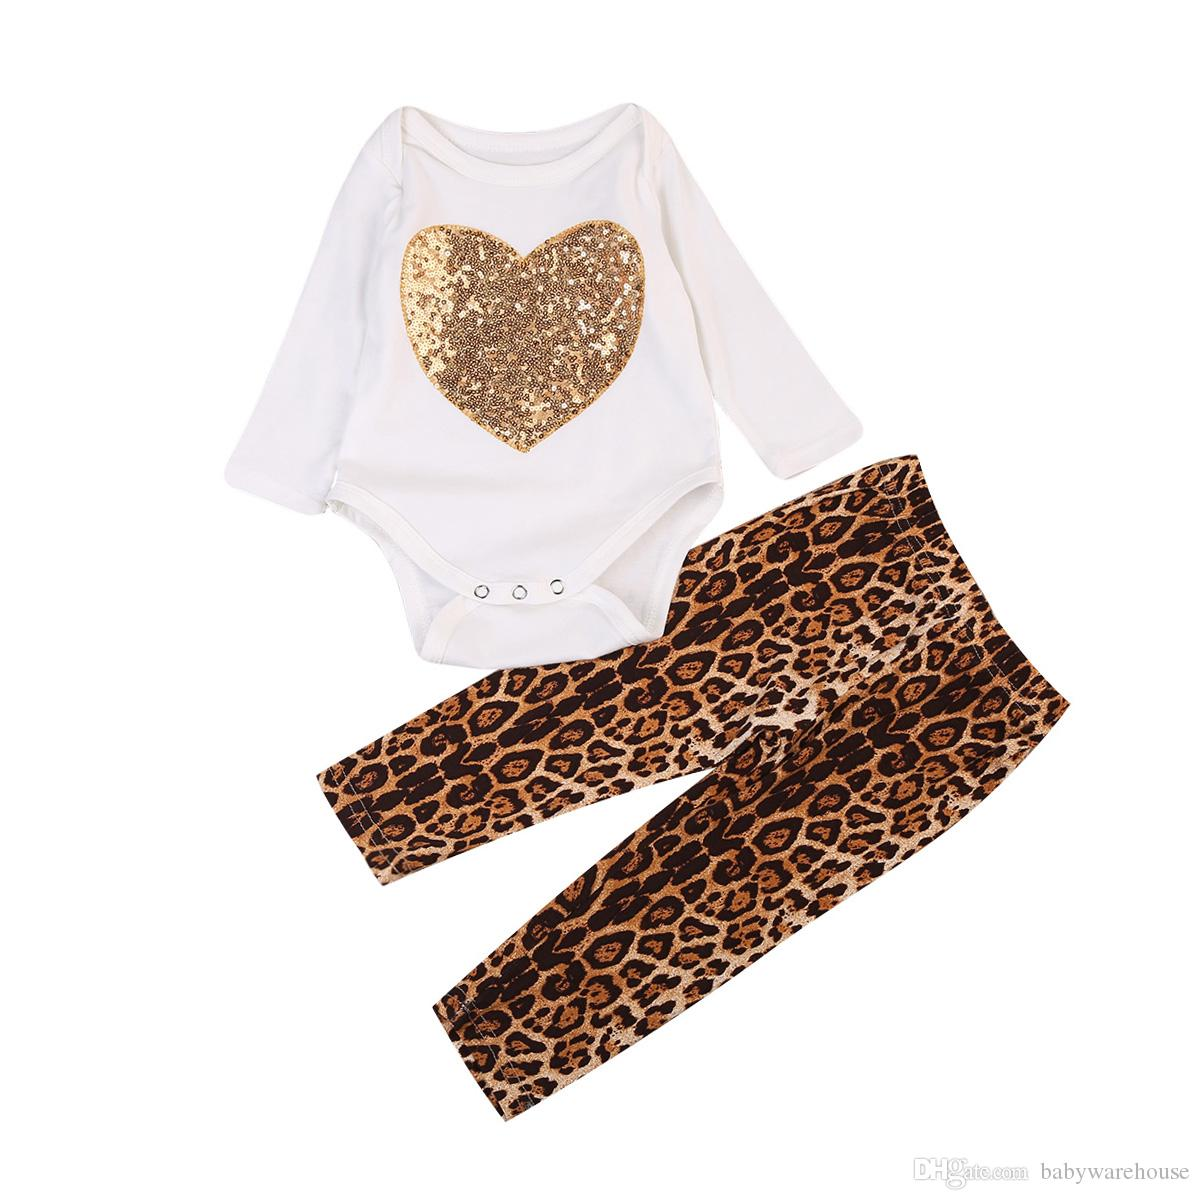 Newborn Baby Girl Clothes Cotton Long Sleeve Sequins Heart Romper Tops + Leopard Pants Leggings 2PCS Girls Outfits Toddler Kids Clothing Set